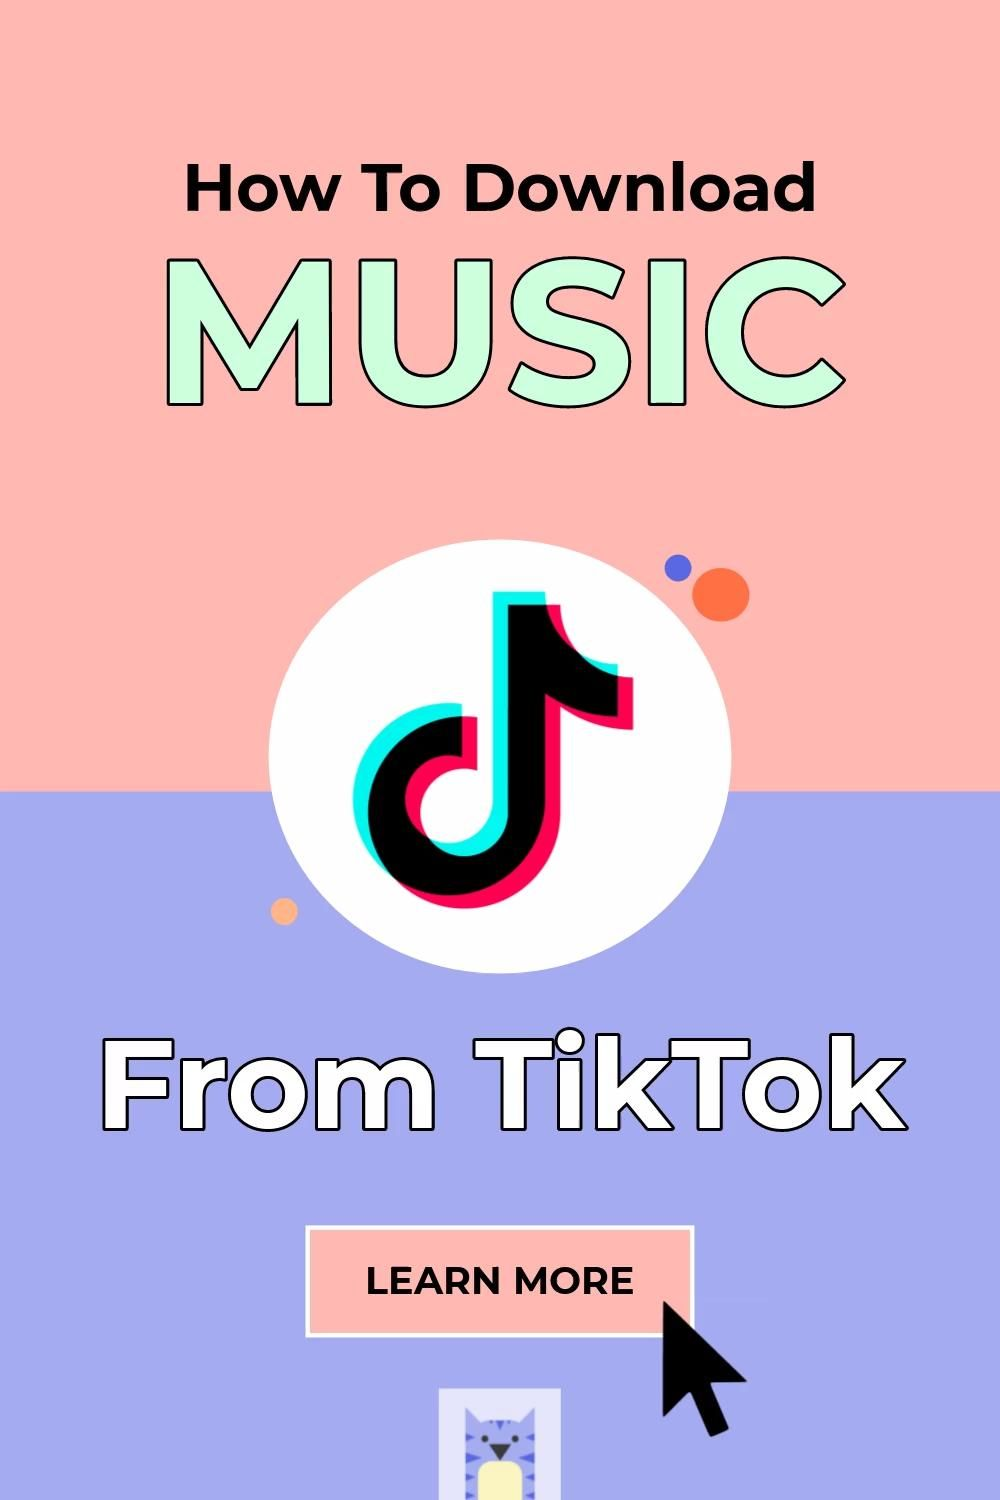 How To Download Music From Tiktok Video Music Download Music Playlist Music